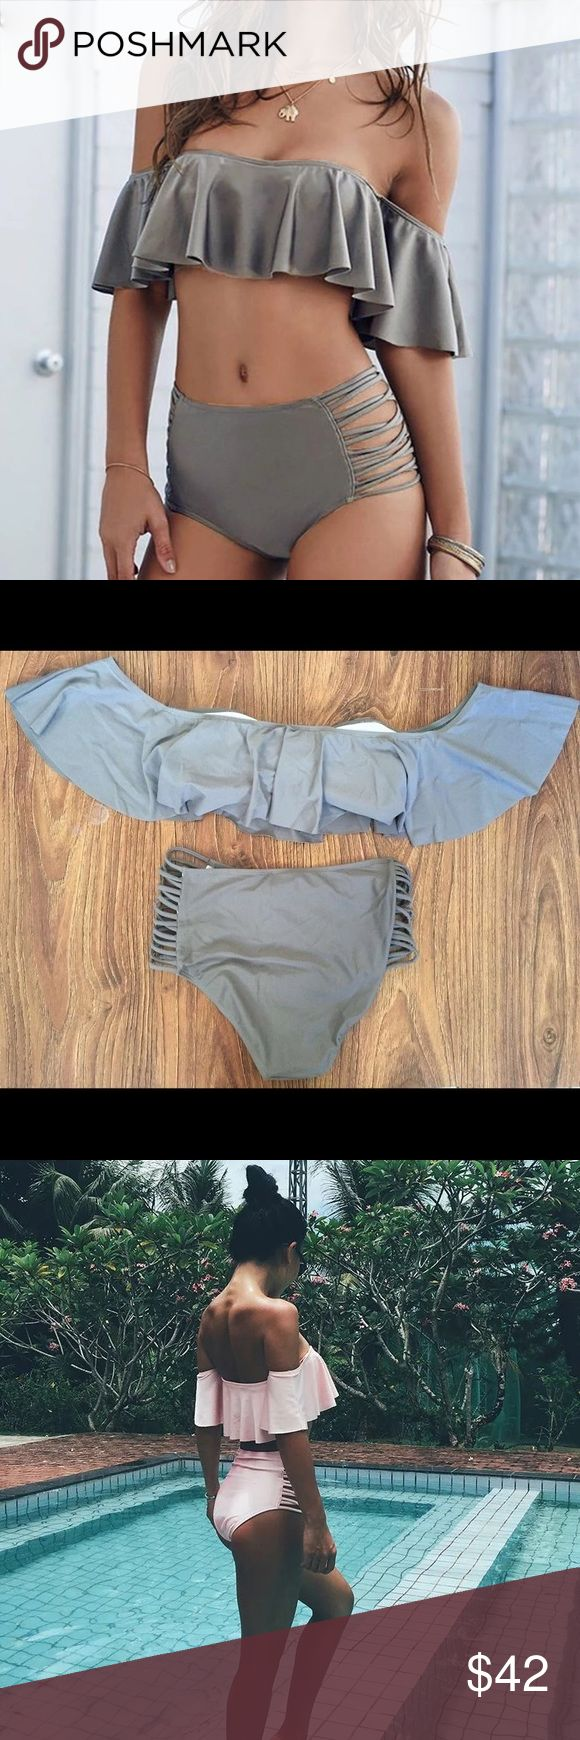 Off The Shoulder Swimsuit I have my best selling swimsuit now in grey!!! These always go fast so snatch it while you can! The bottoms are high waisted and the top is padded. Fits true to size. Swim Bikinis